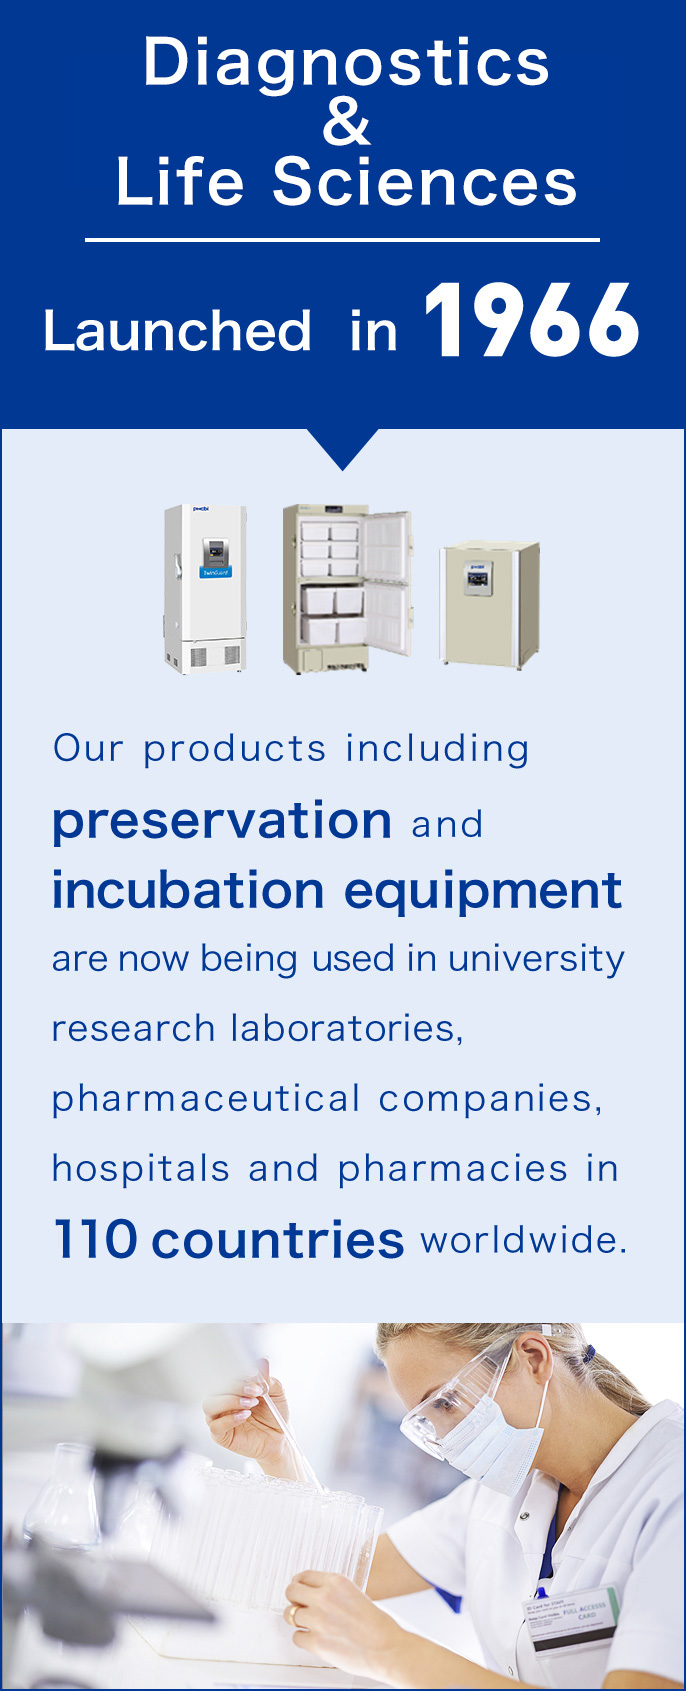 Diagnostics & Life Sciences, Launched  in 1966. Our products including preservation and incubation equipment are now being used in university research laboratories, pharmaceutical companies, hospitals and pharmacies in 110 countries worldwide.